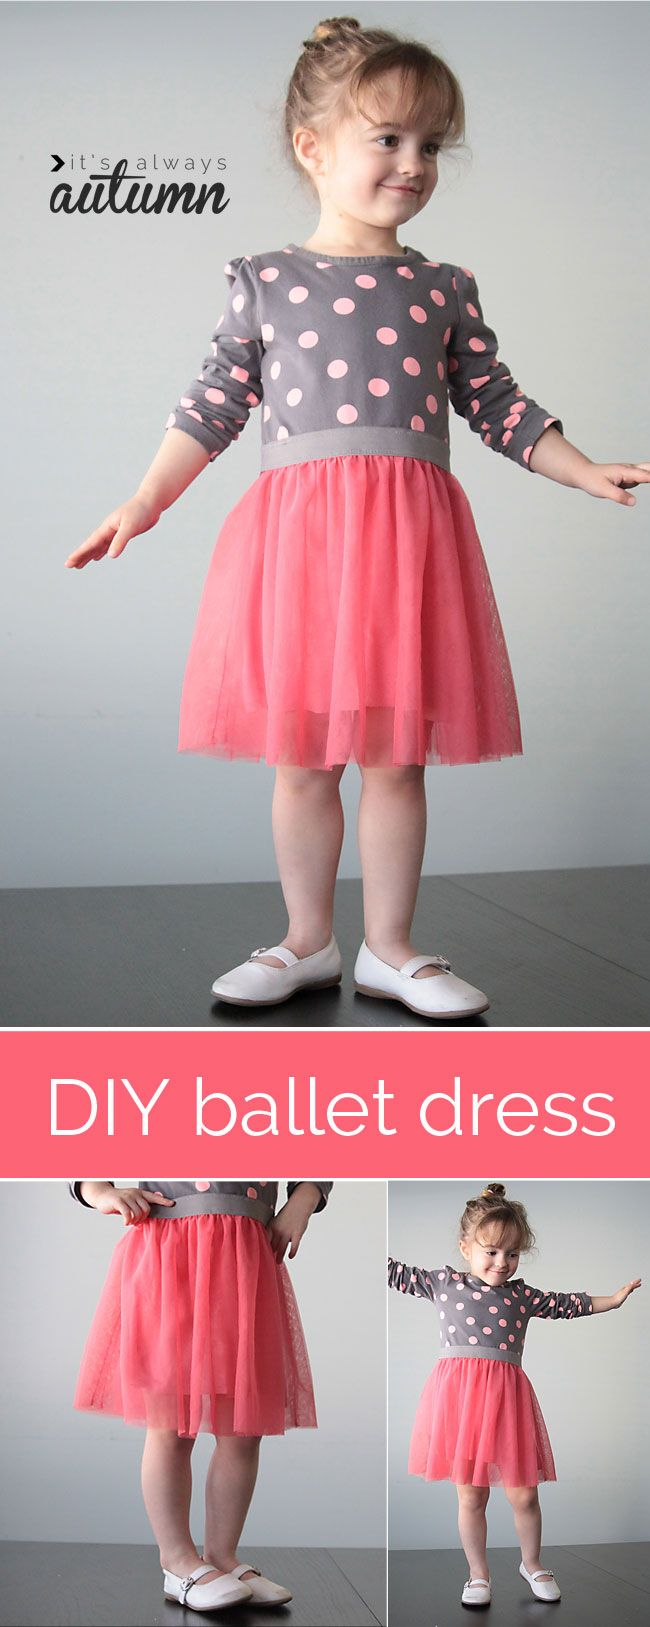 Diy ballett dress